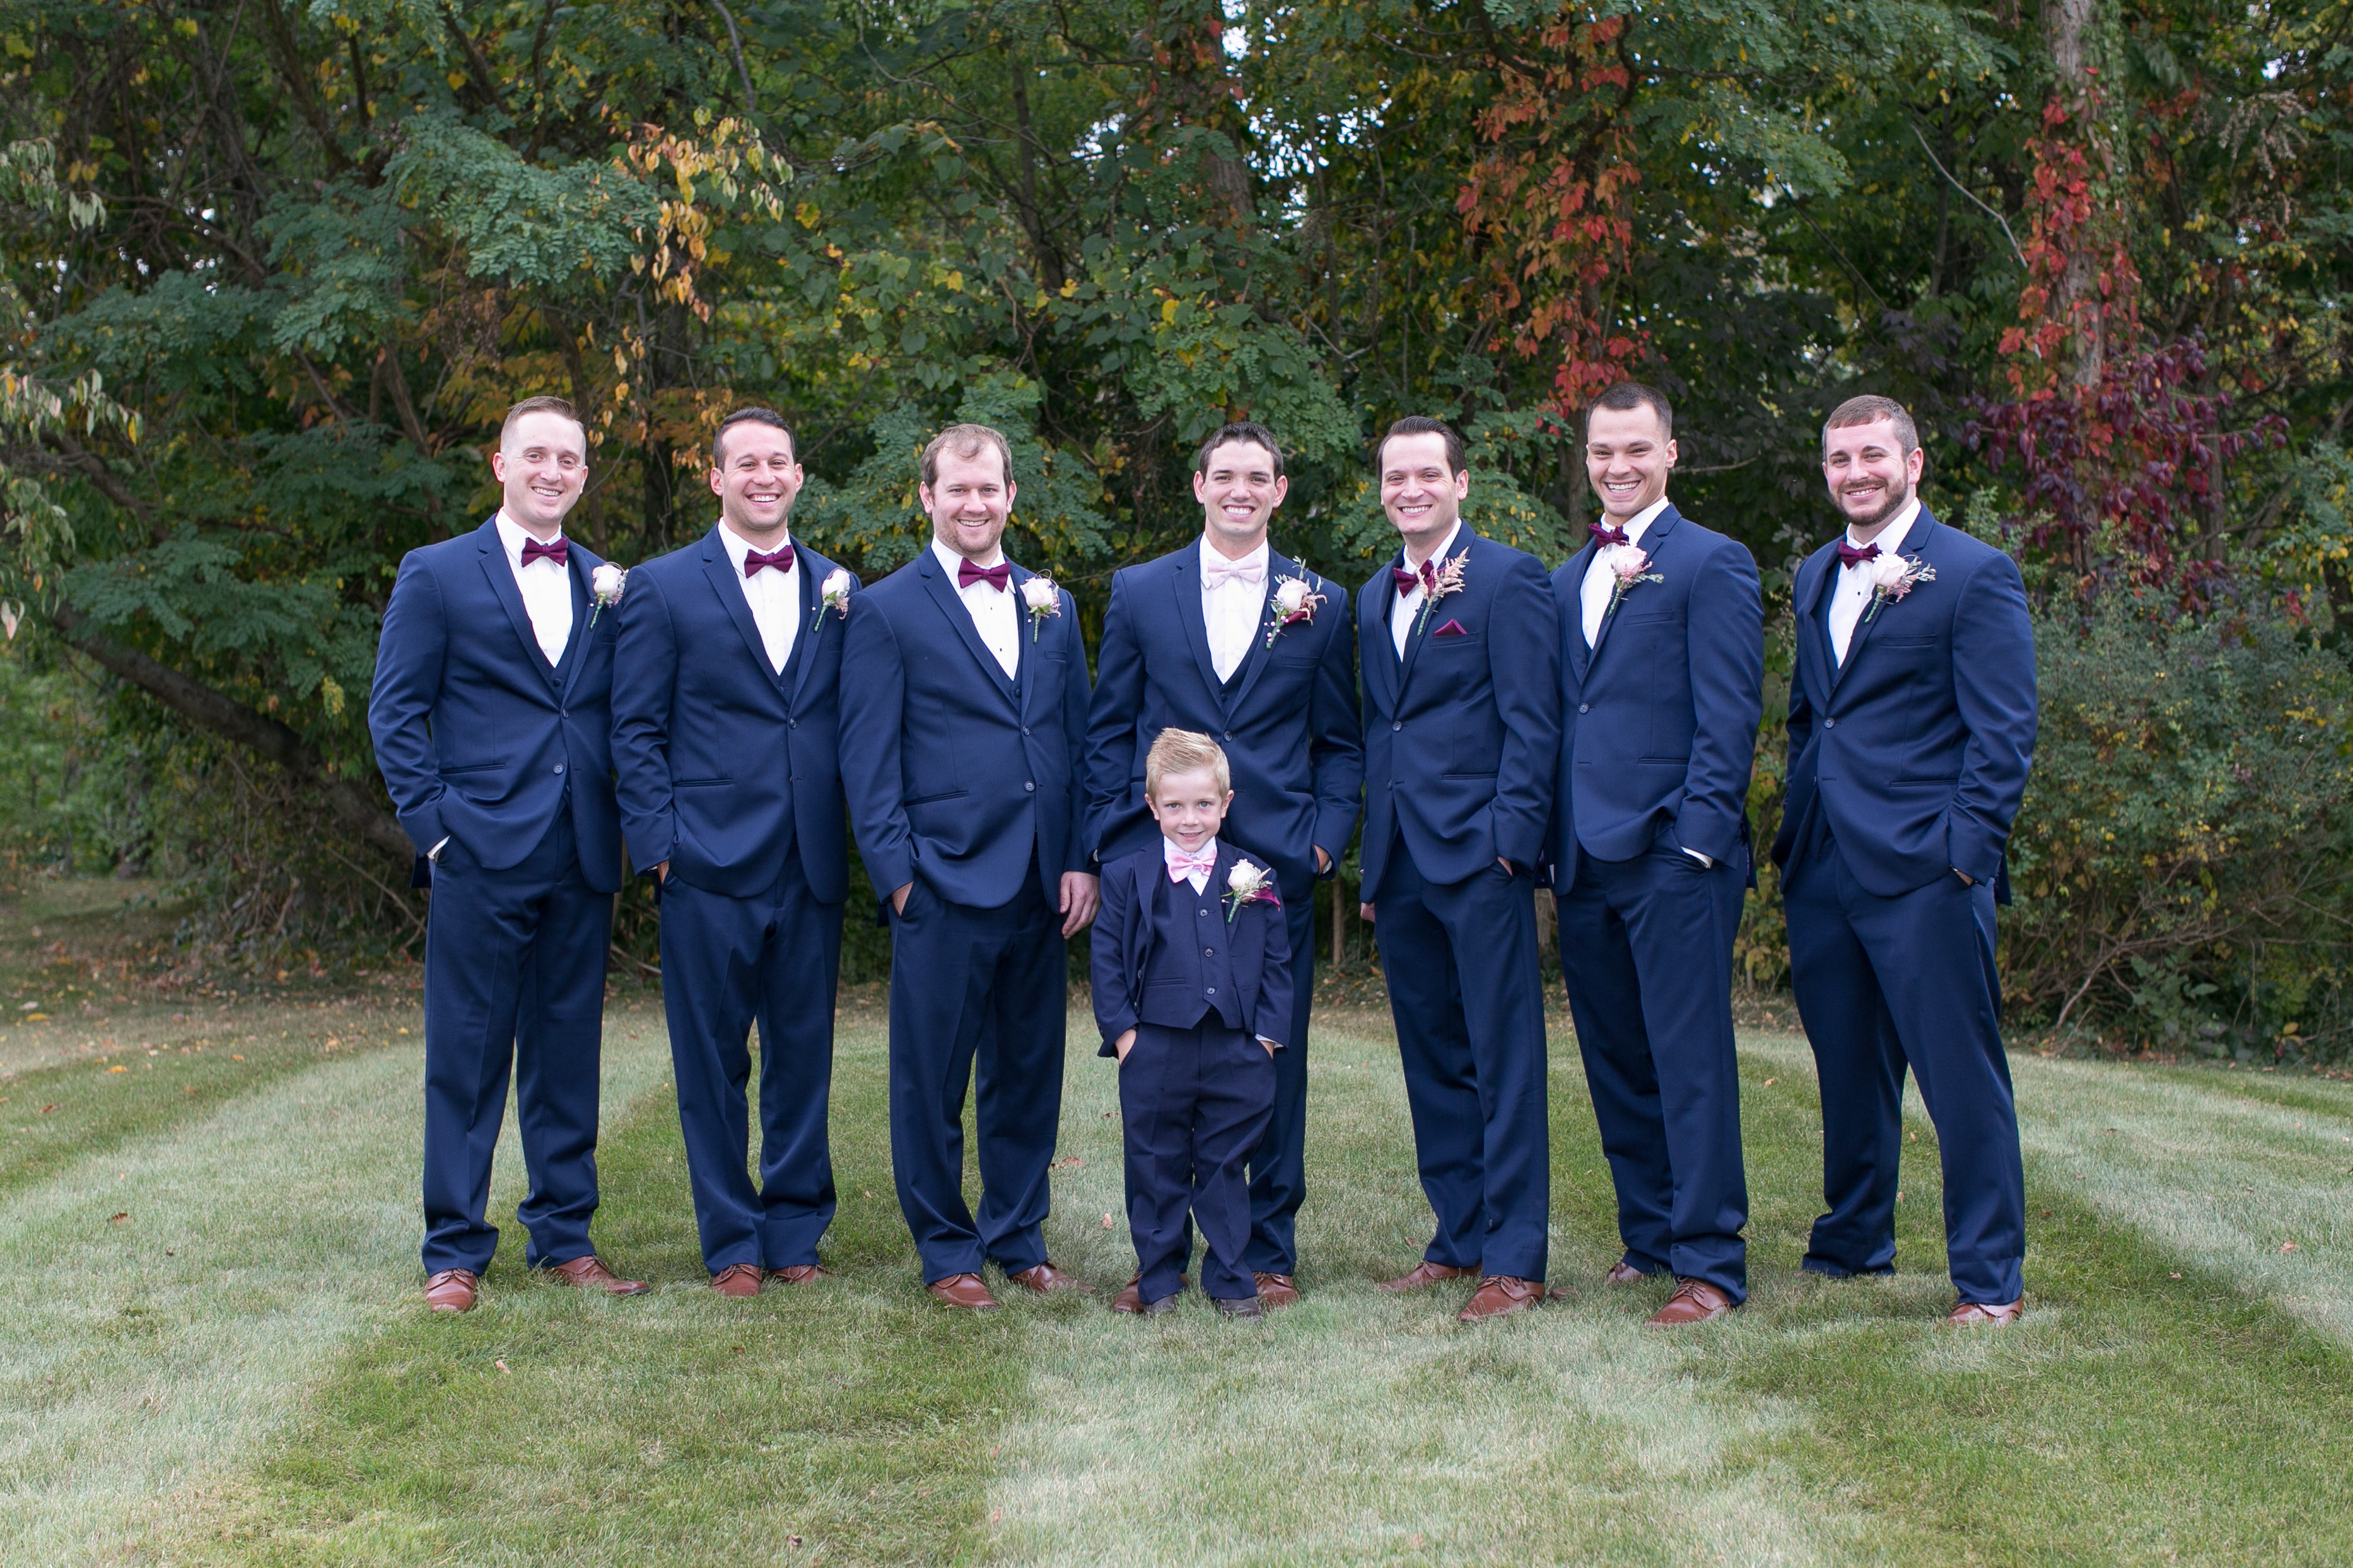 A perfect fall wedding; groom and groomsmen in navy and bordeaux